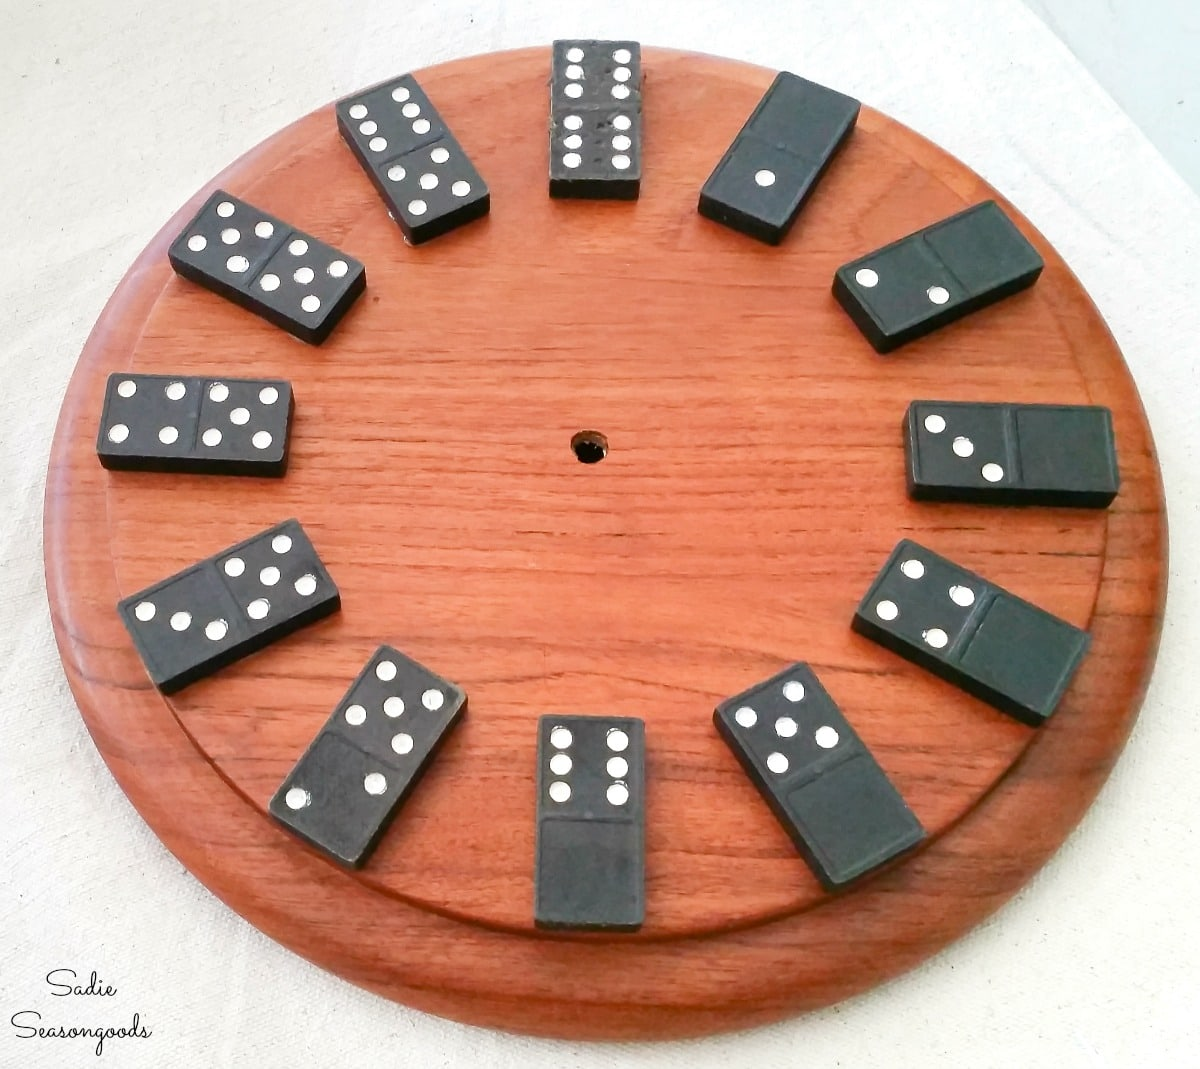 Upcycling the base of a cheese dome as a domino clock